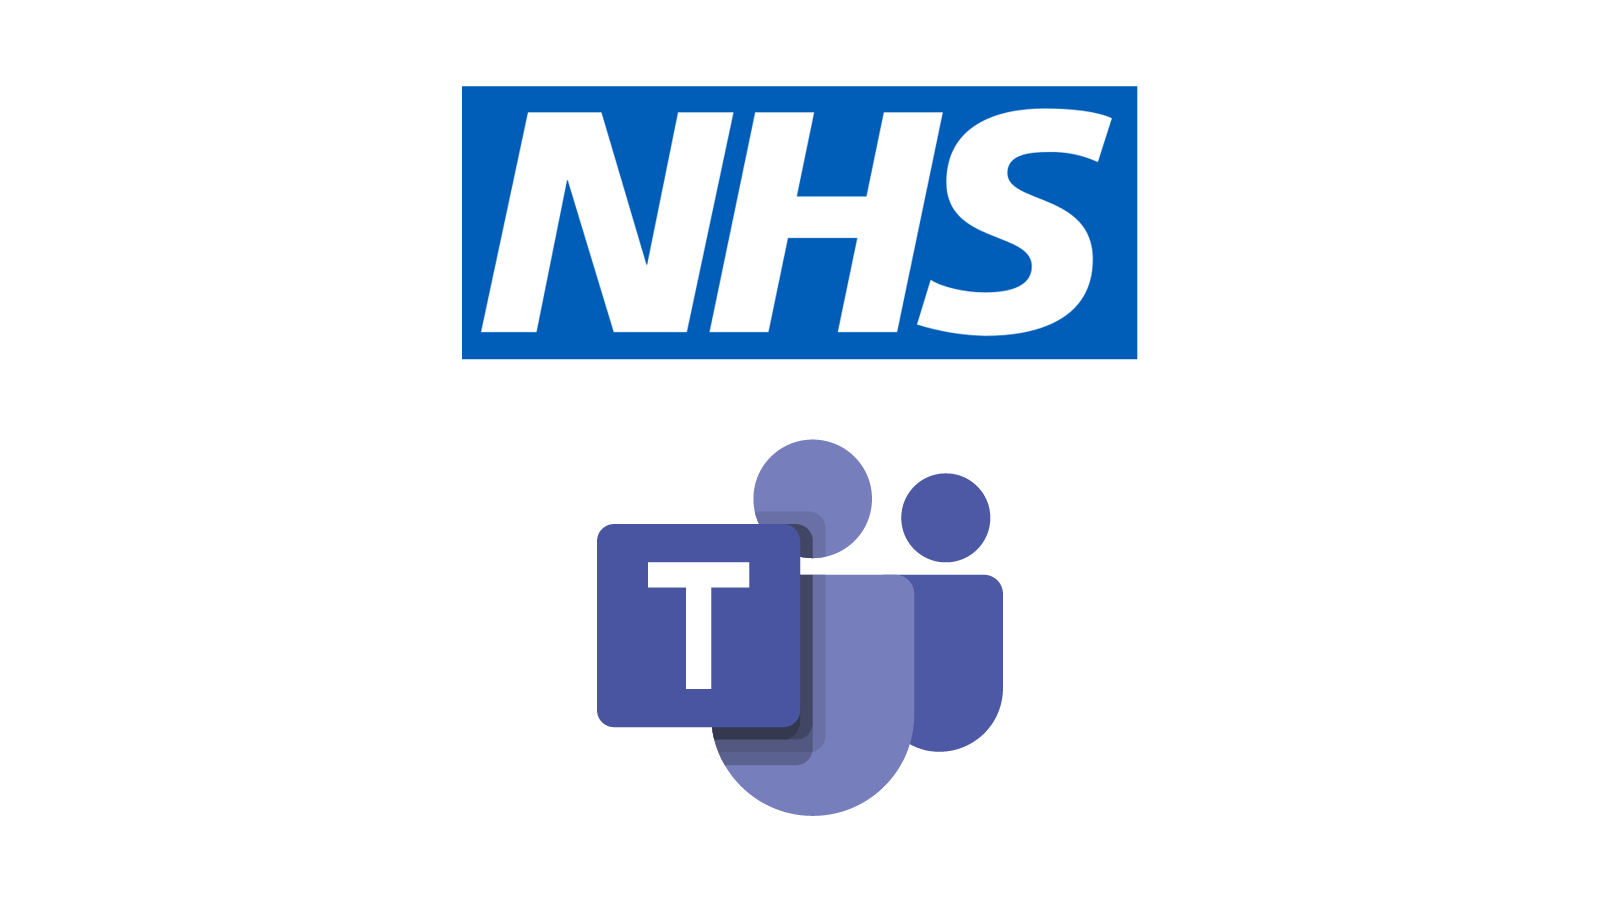 Logos for the NHS and Microsoft Teams